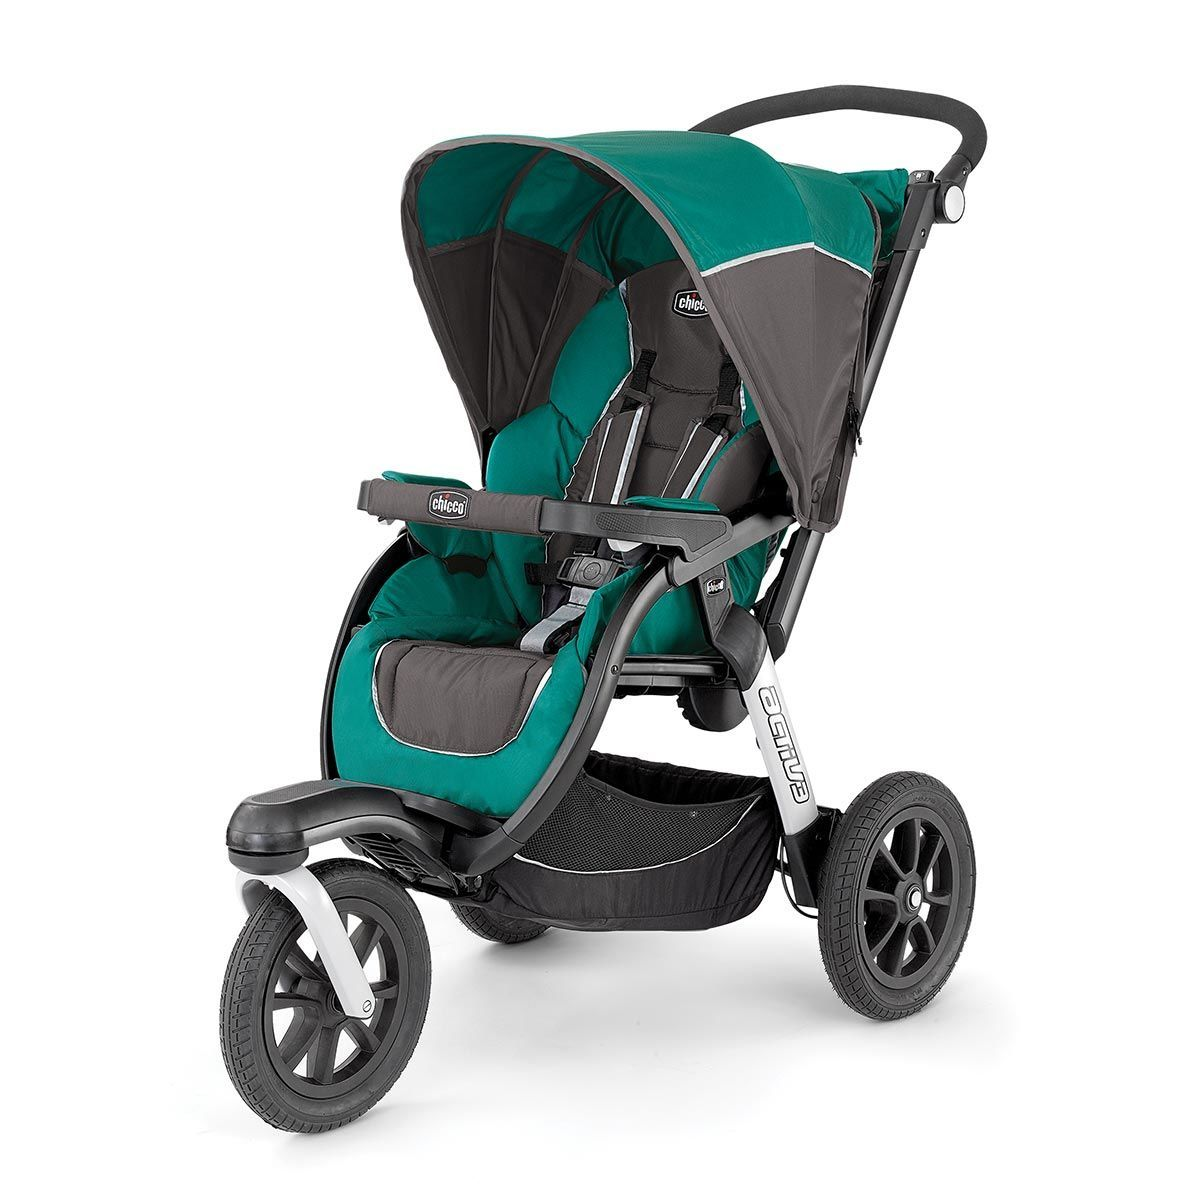 The perfect stroller solution for your active lifestyle